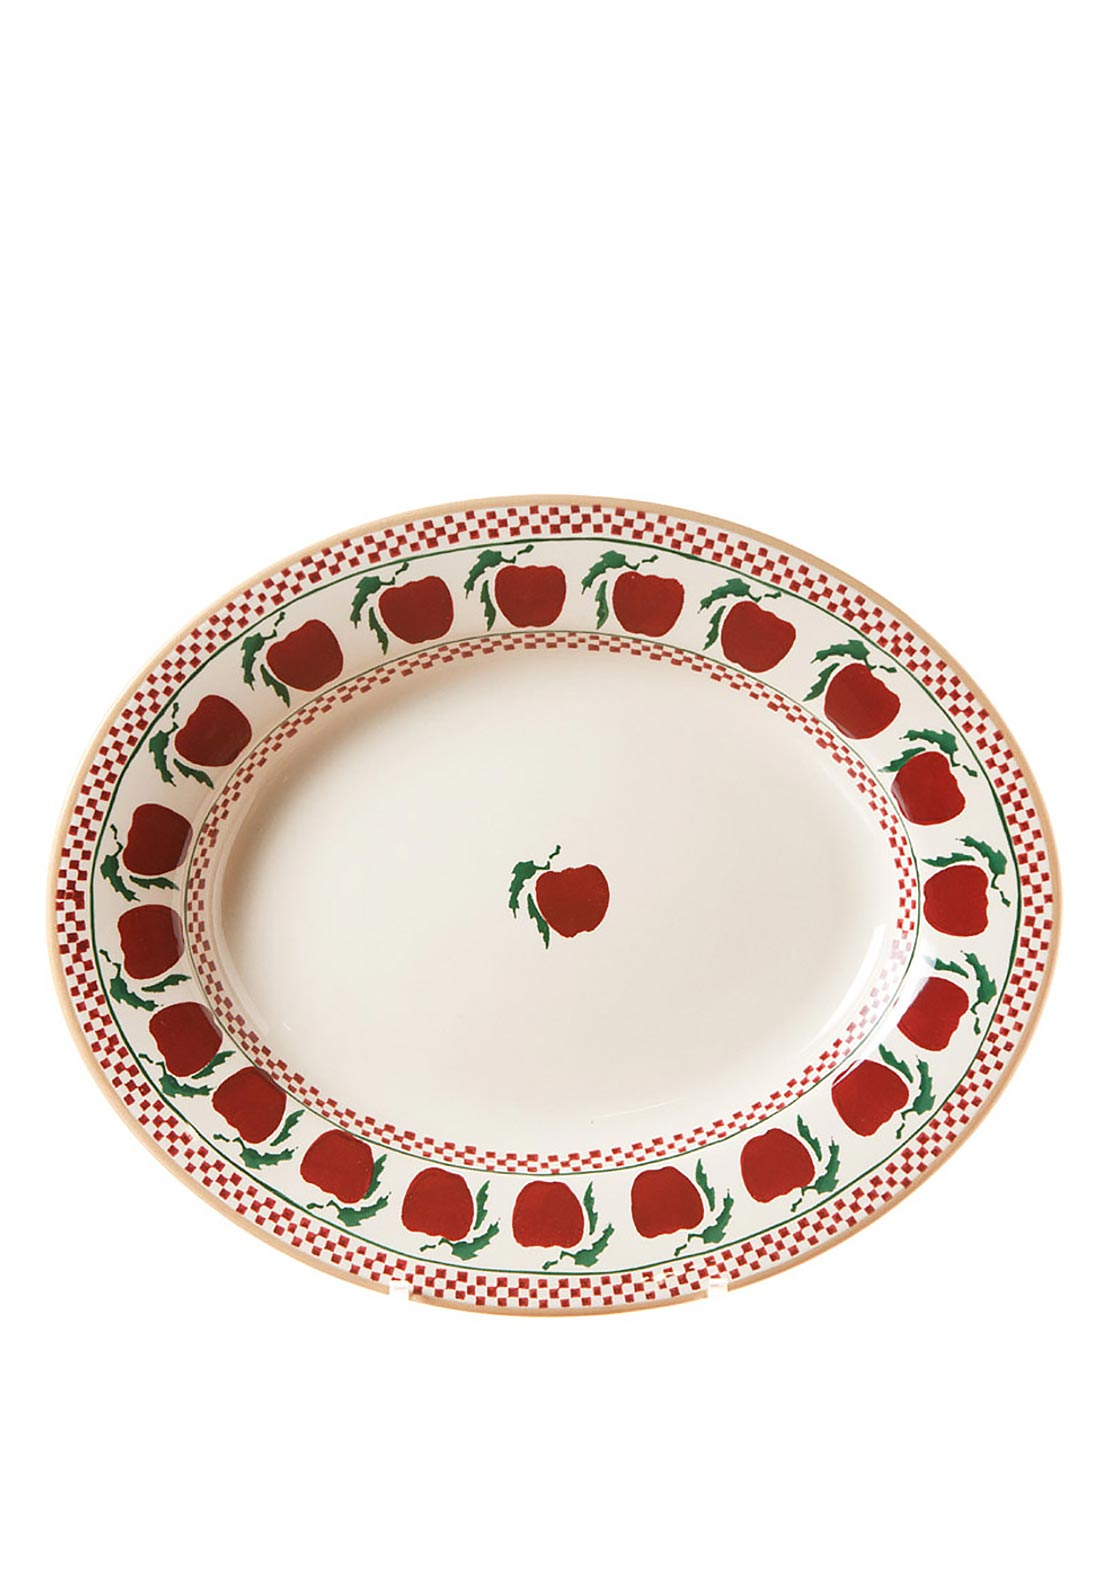 Nicholas Mosse Pottery Apple Oval Serving Dish, Small